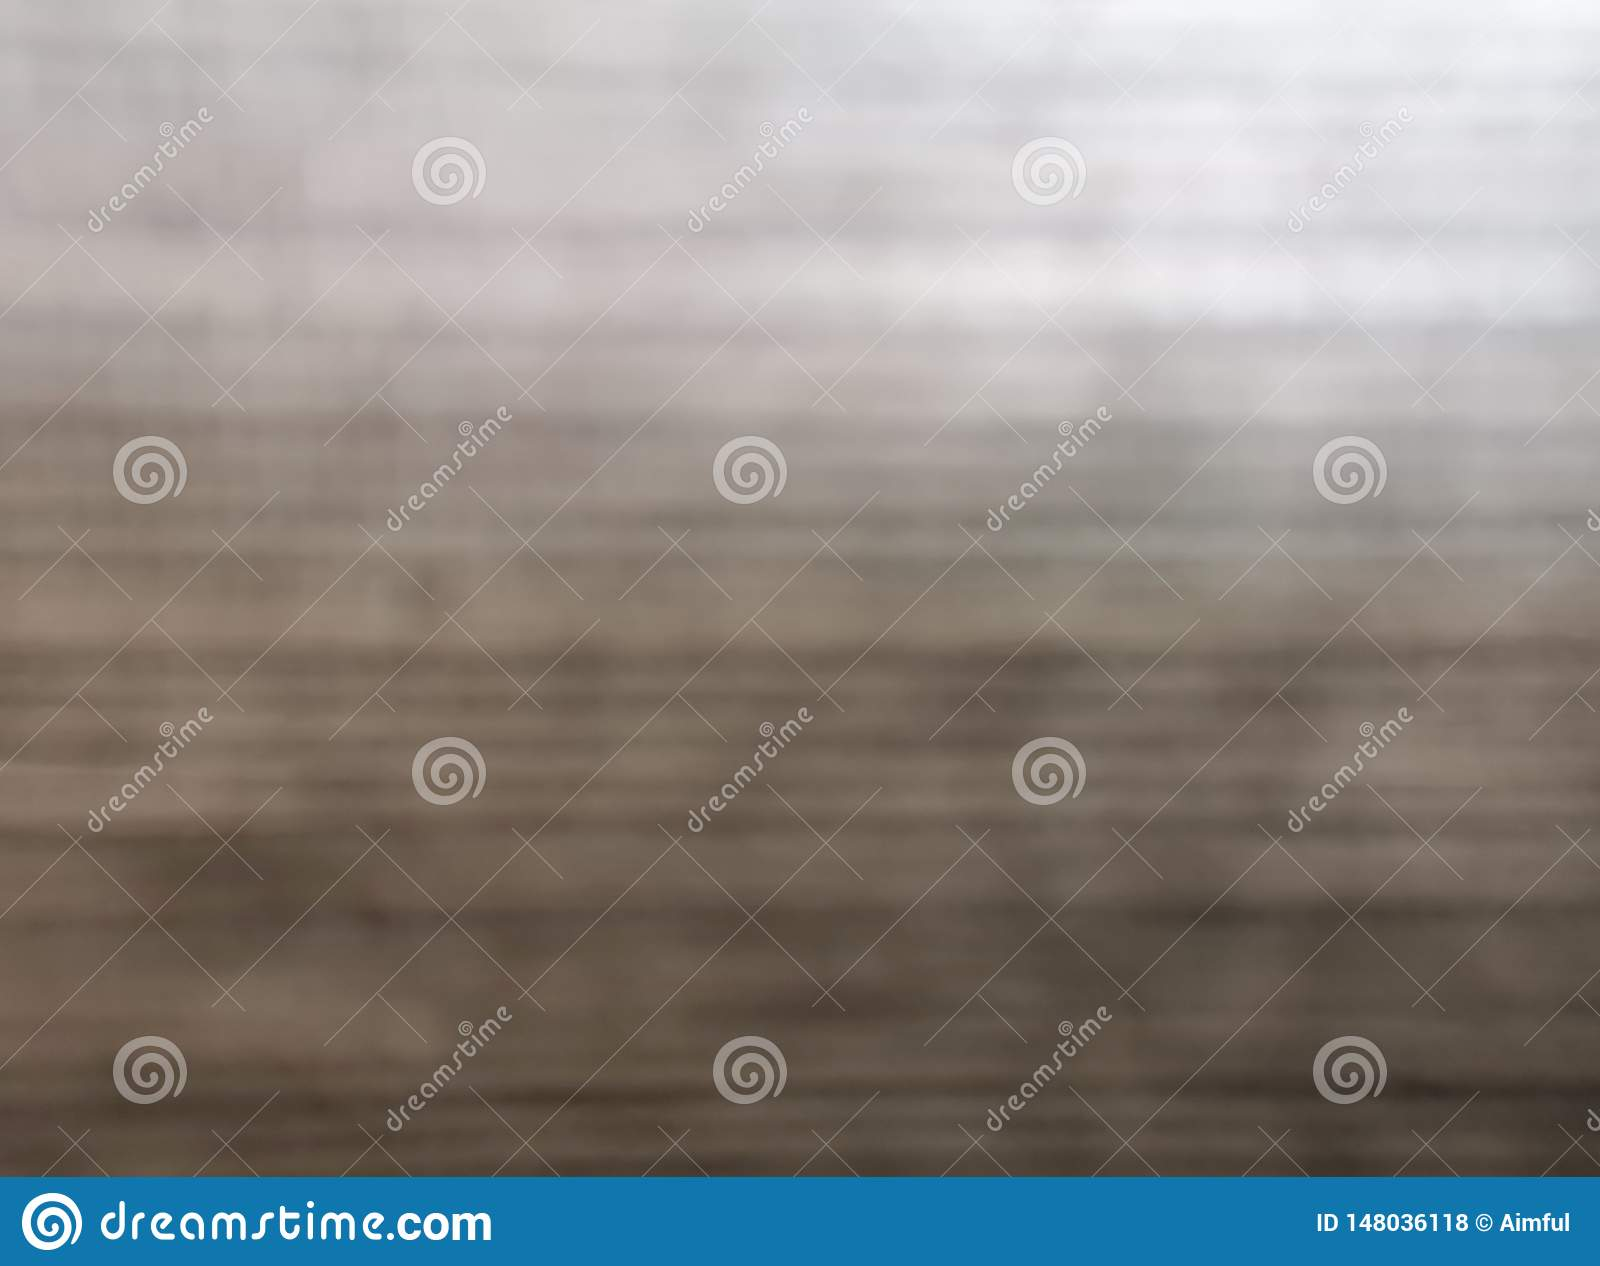 Blurry glitter gray and brow wall for decorate luxury background, bokeh abstract image